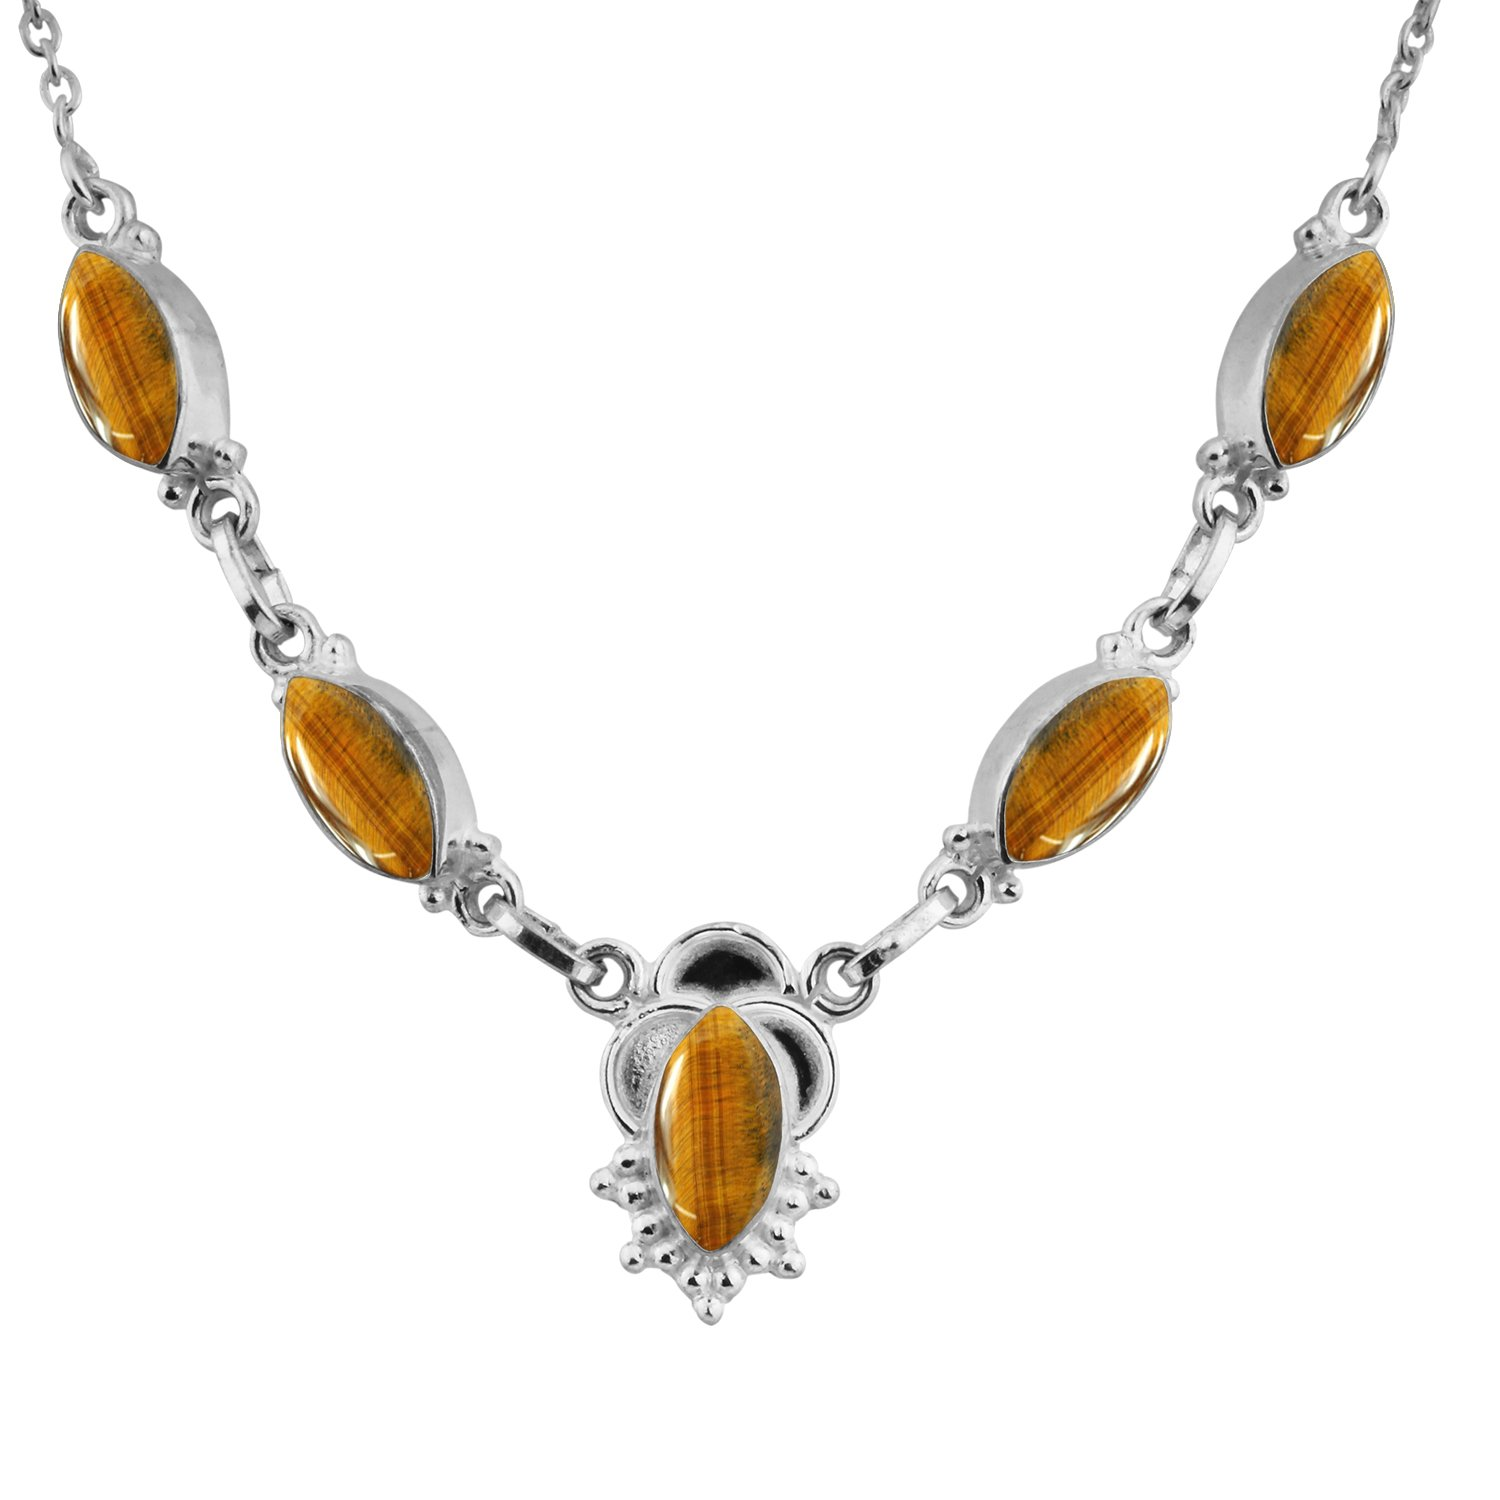 14.00ctw,Genuine Tiger Eye & 925 Silver Plated Necklace